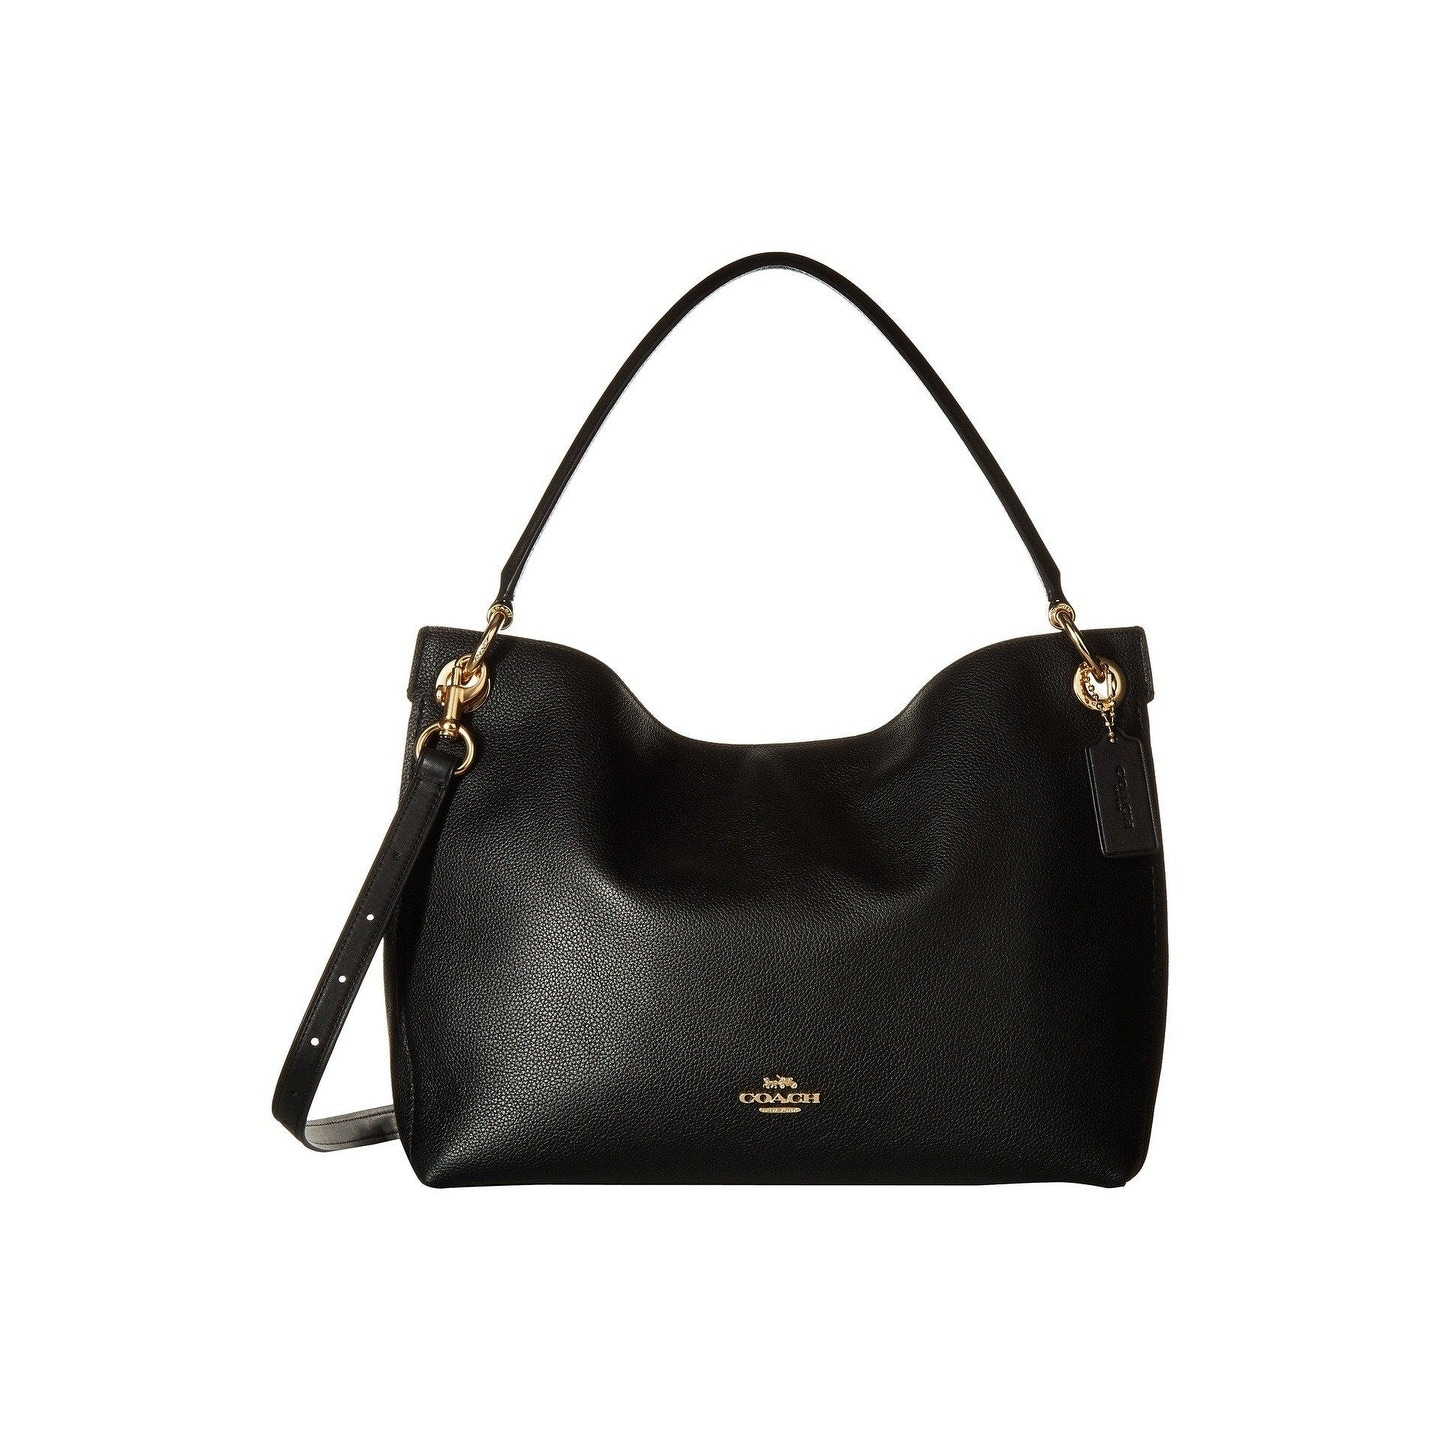 267813d10165 Shop COACH Polished Pebble Leather Clarkson Hobo - Free Shipping Today -  Overstock - 22419889